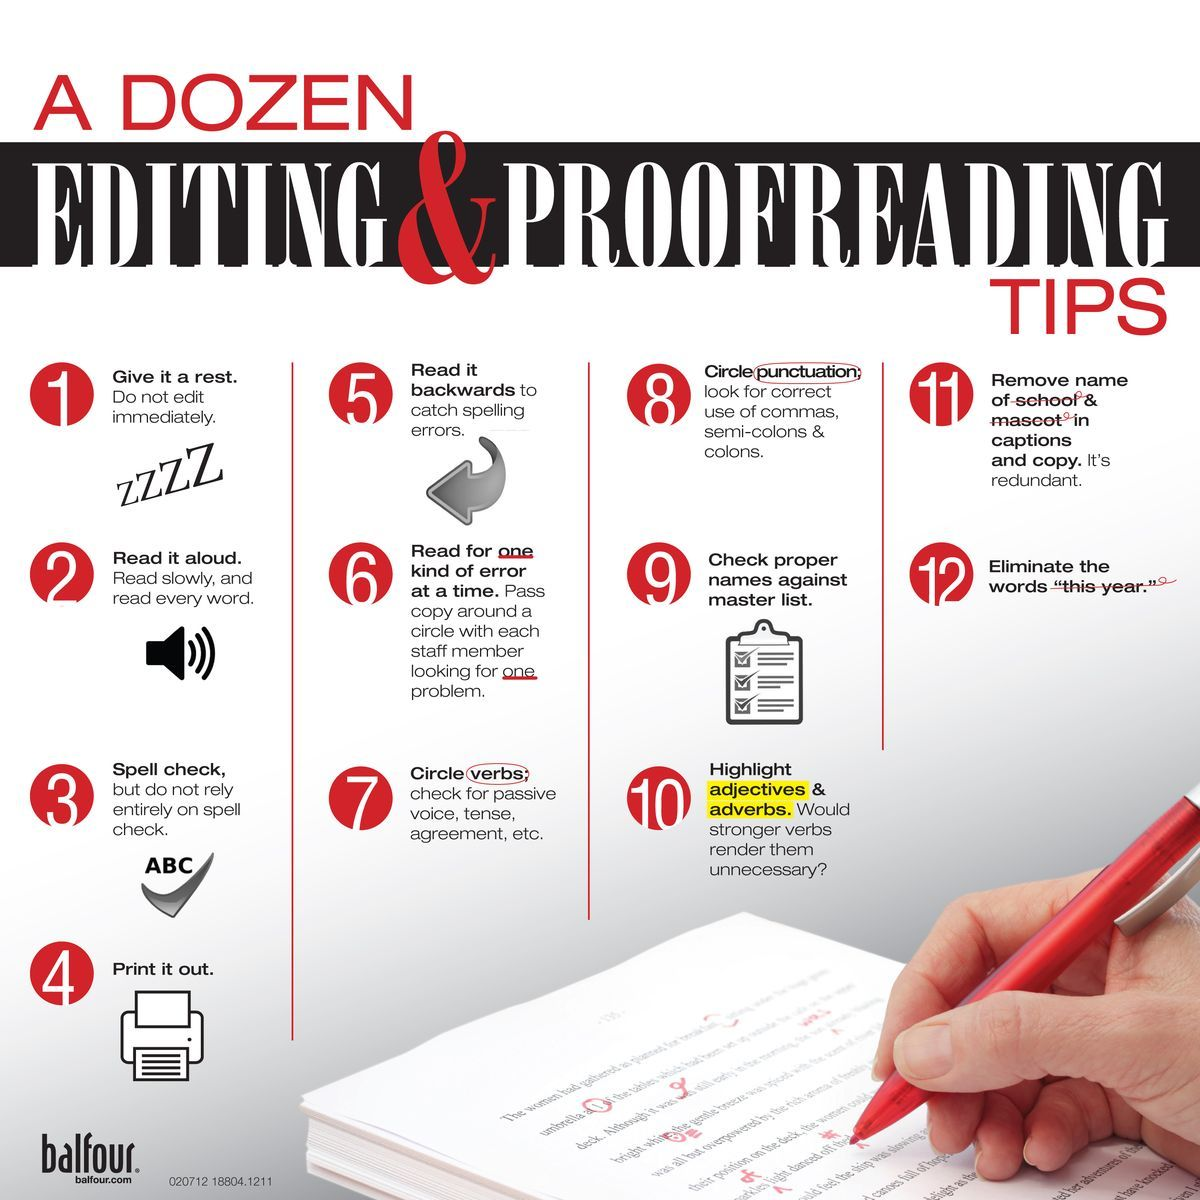 College paper proofreading service